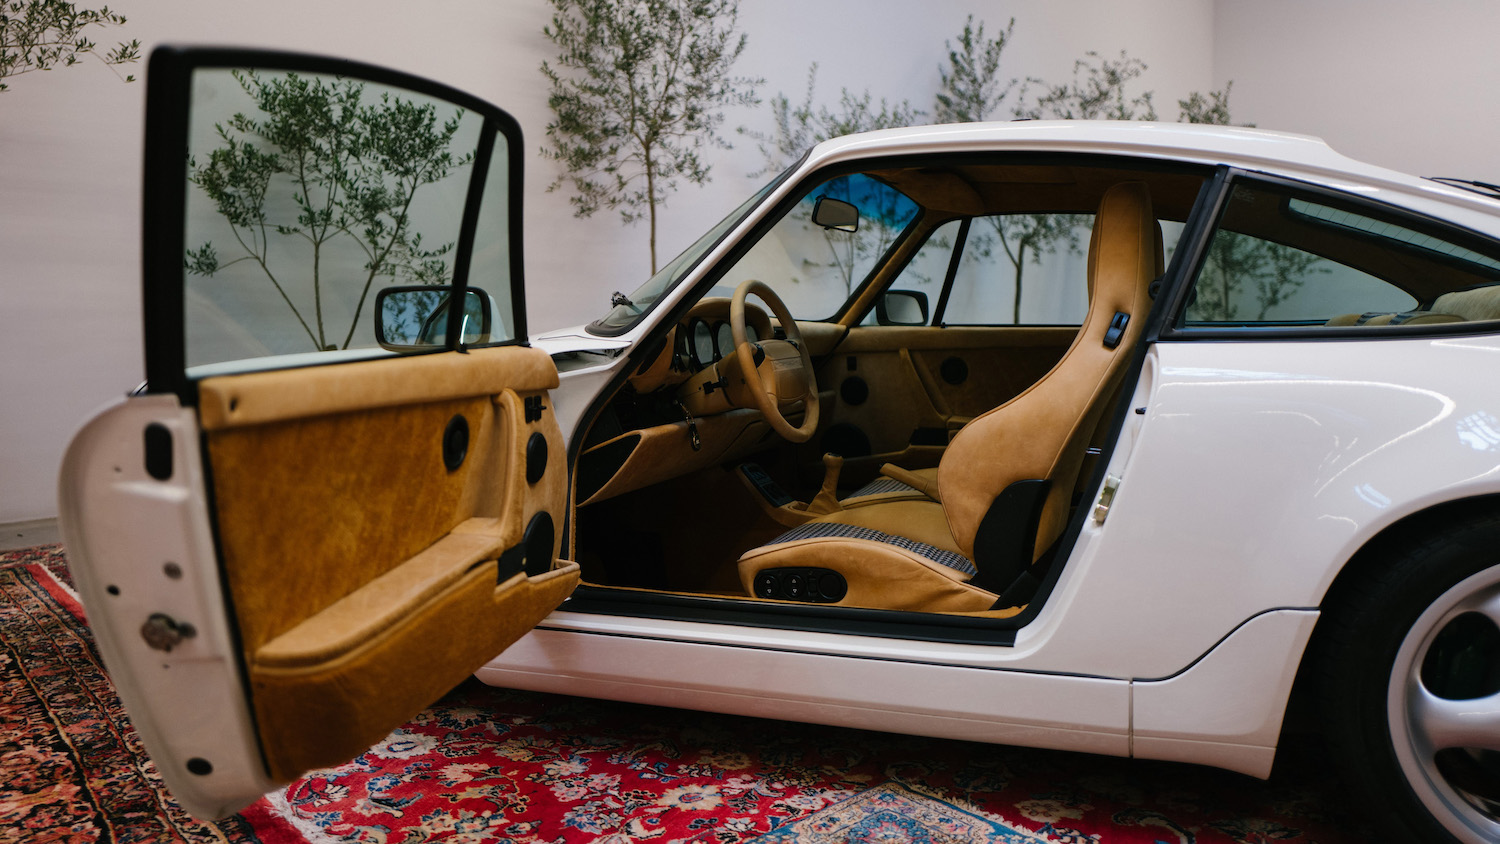 911 Carrera 4 type 964 side-view open door